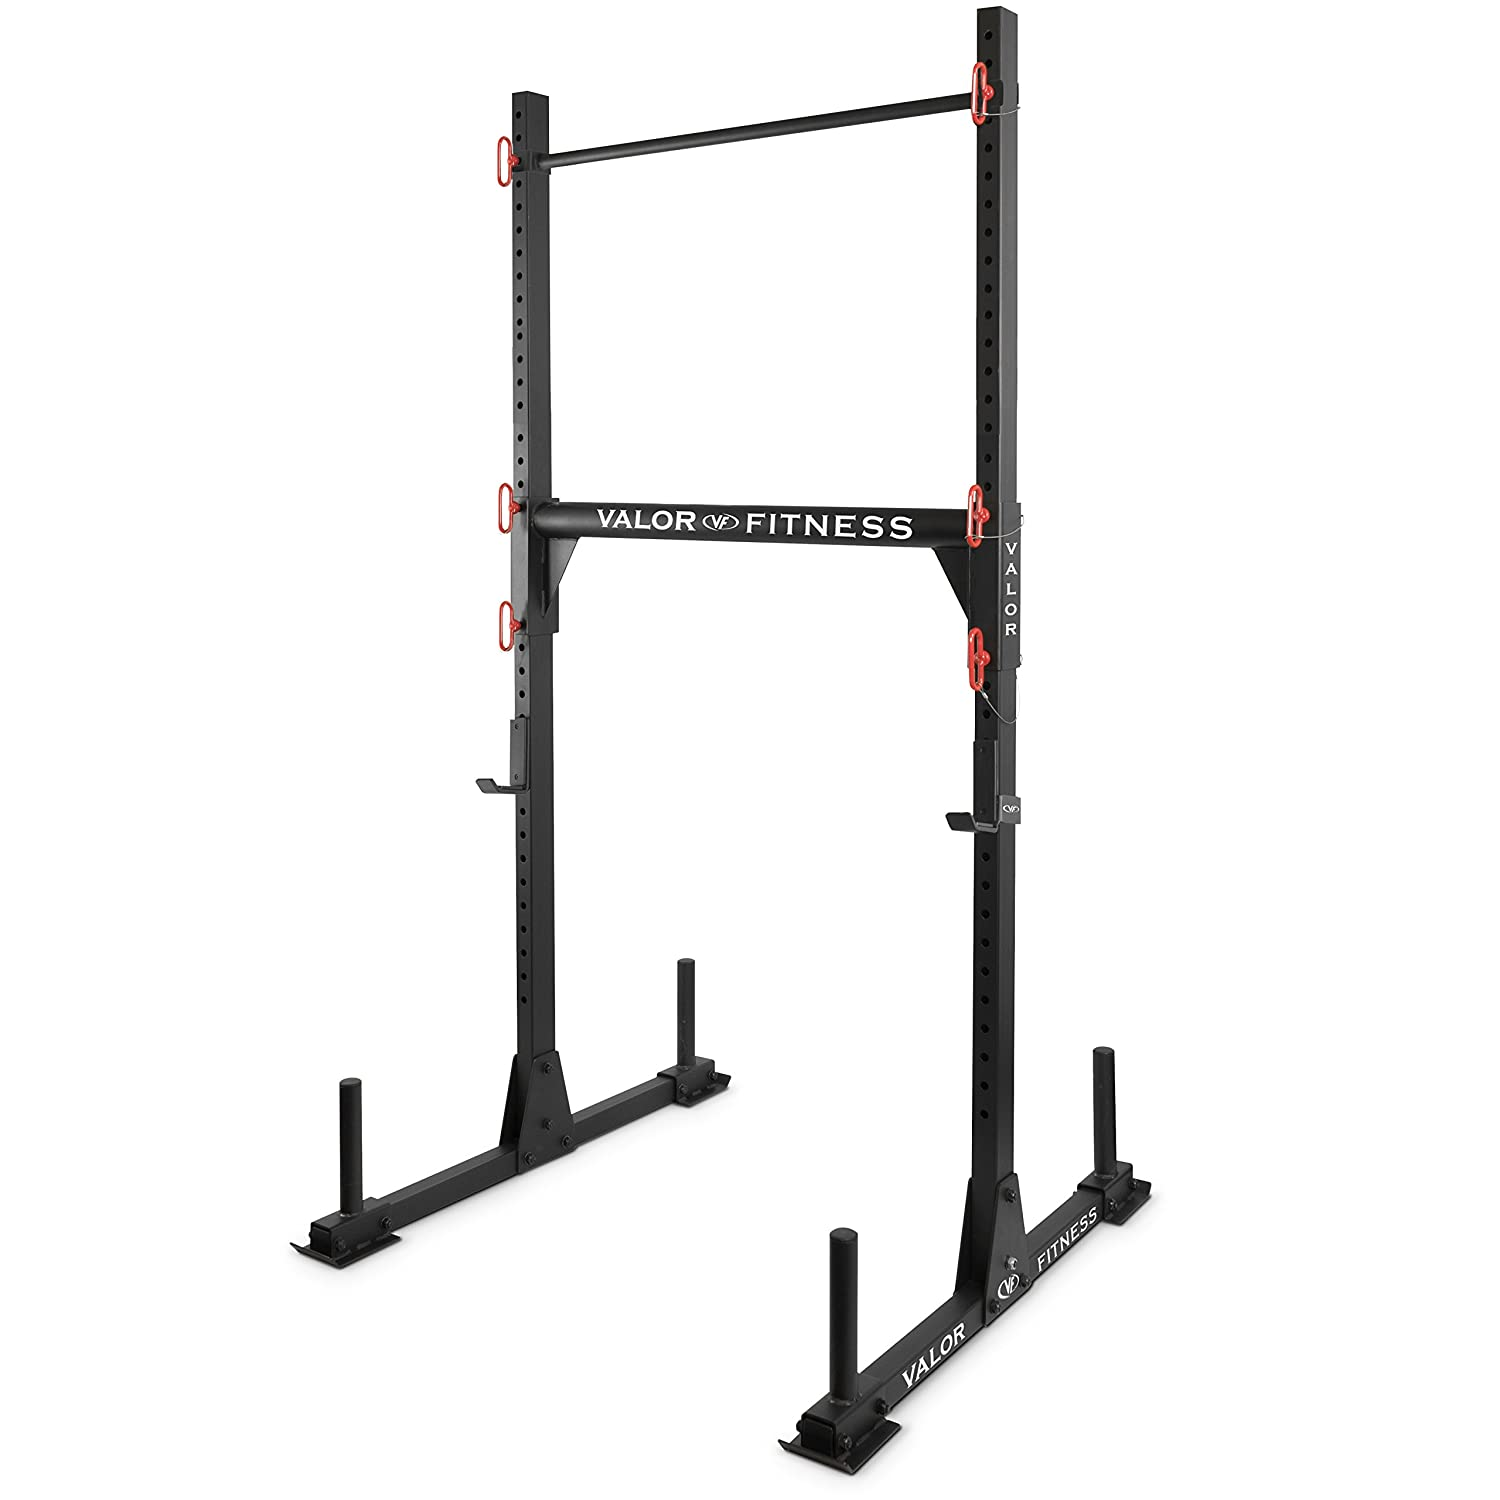 Valor Fitness BD-21 Yoke Rack with J-Hooks, Adjustable Crossbar and Pull Up Bar and Option to Add On Safety Bar Catches